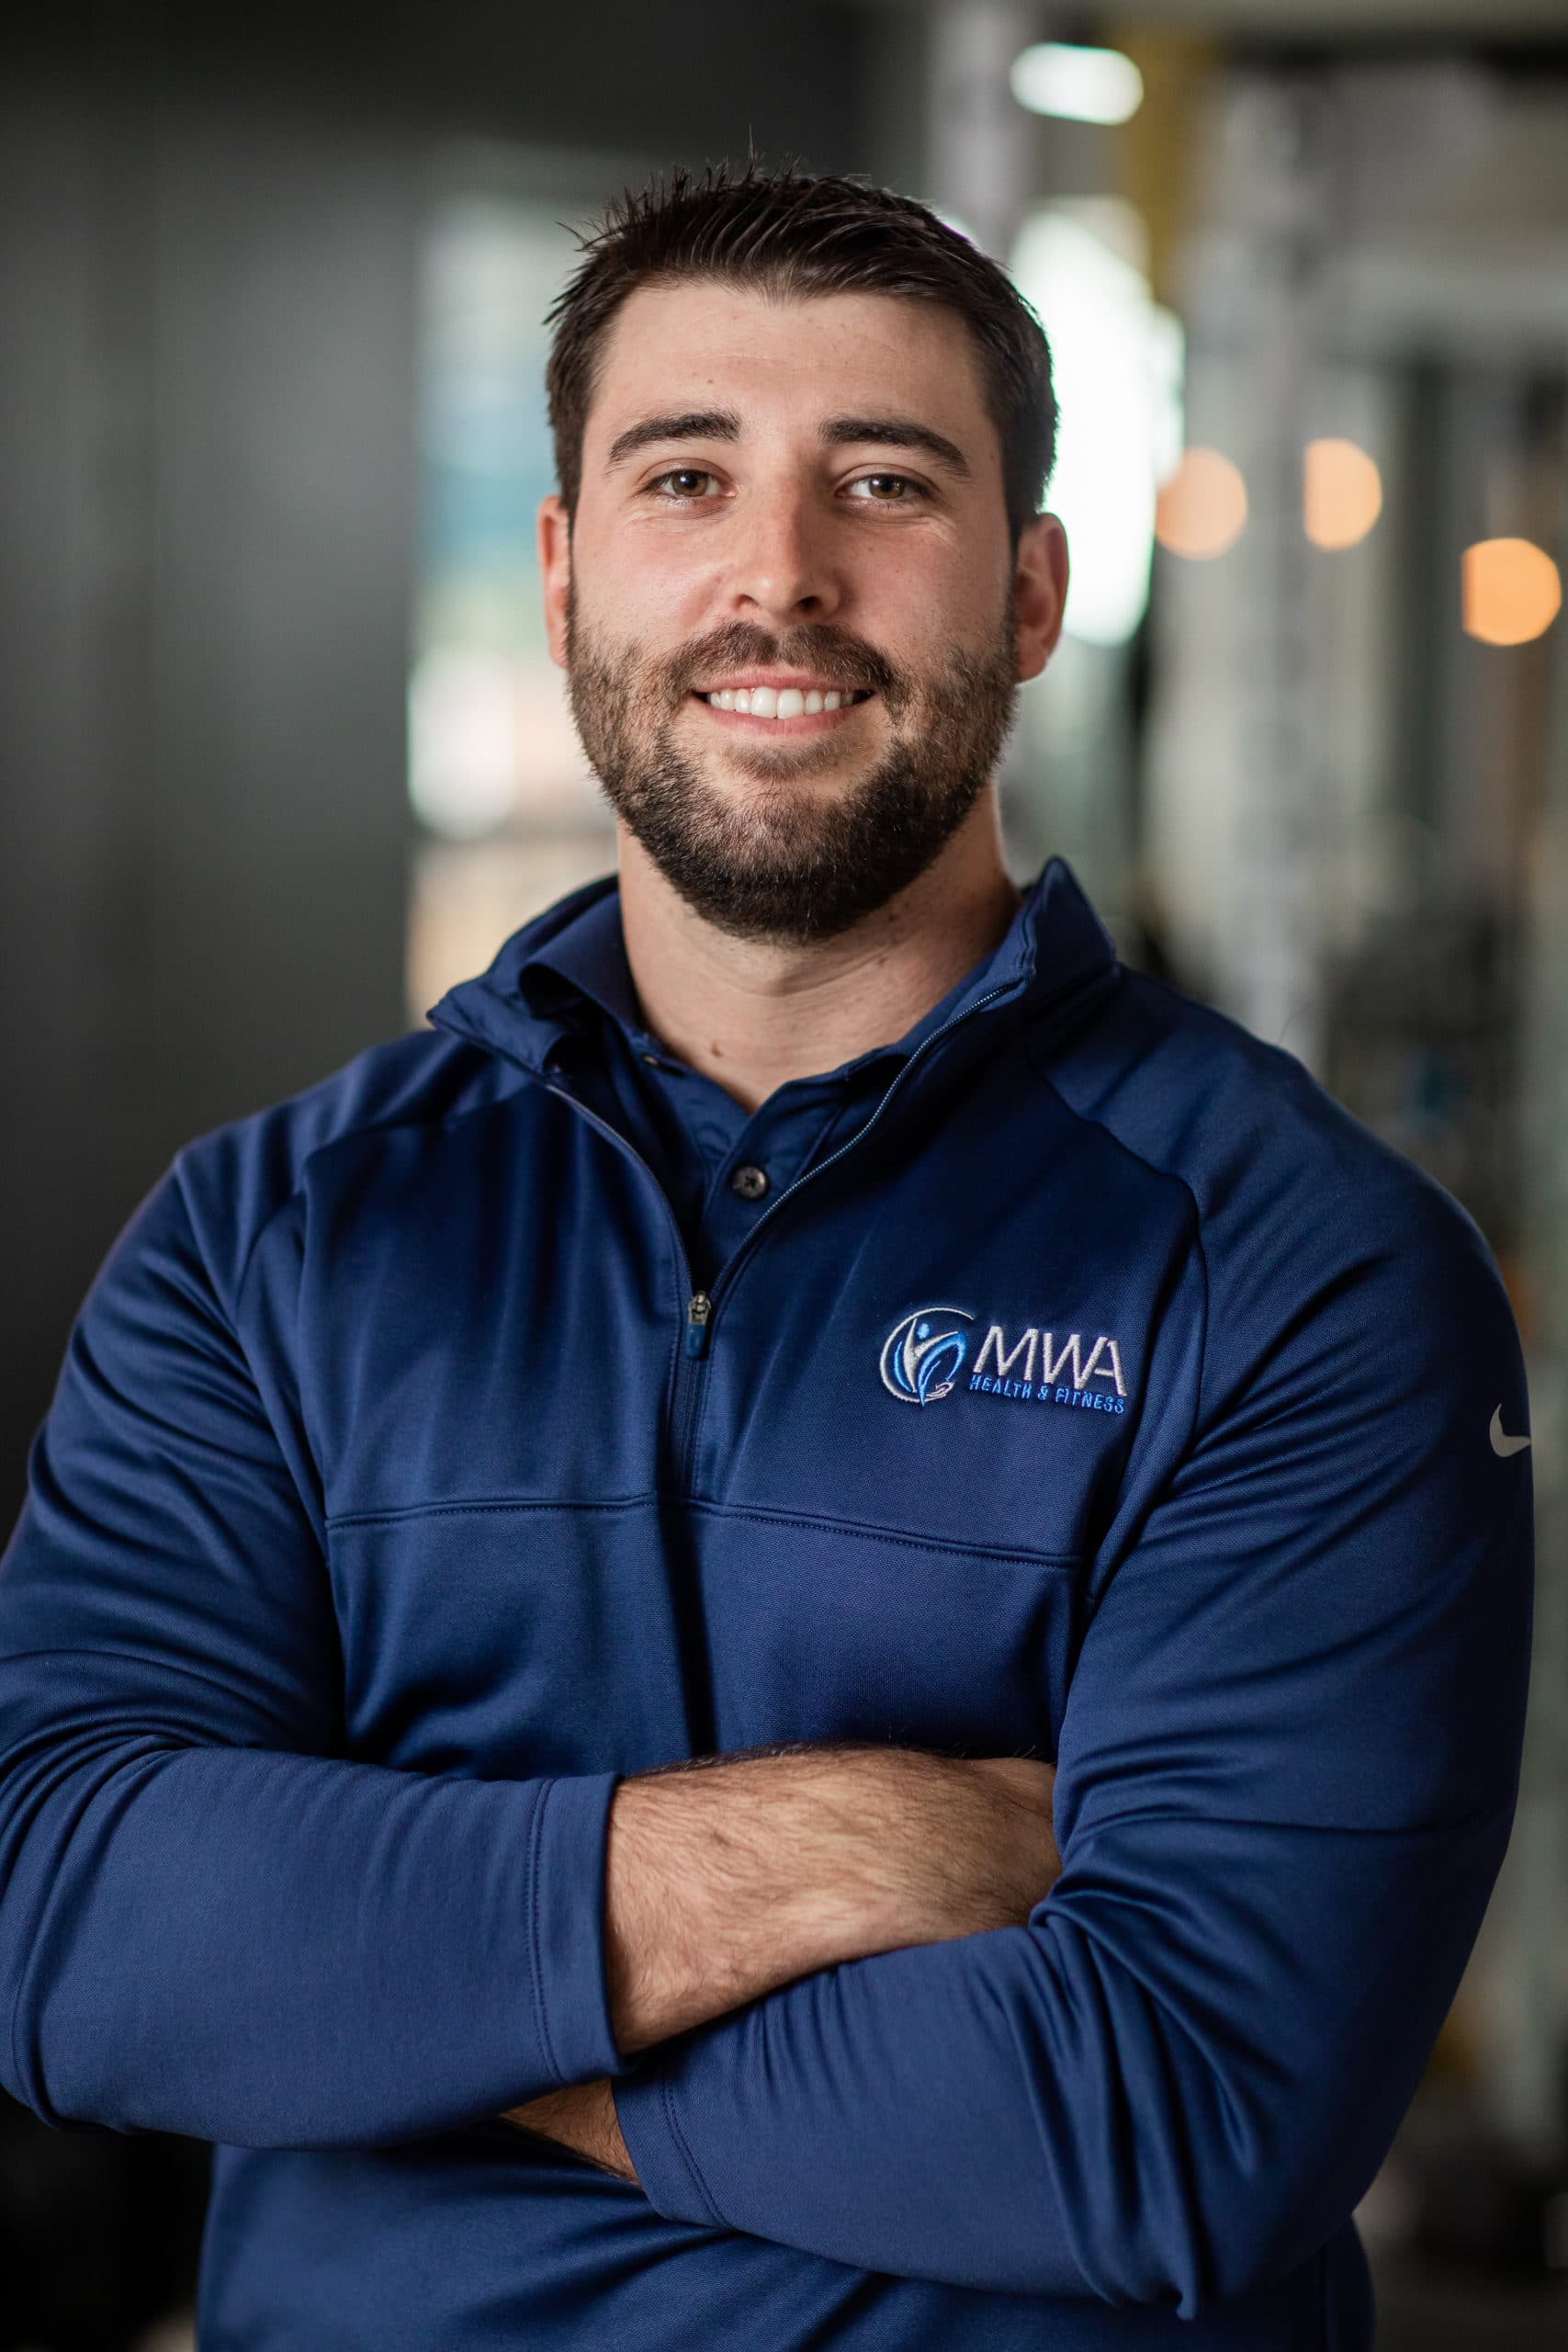 Boston Personal Trainers: Ricky Stoltz